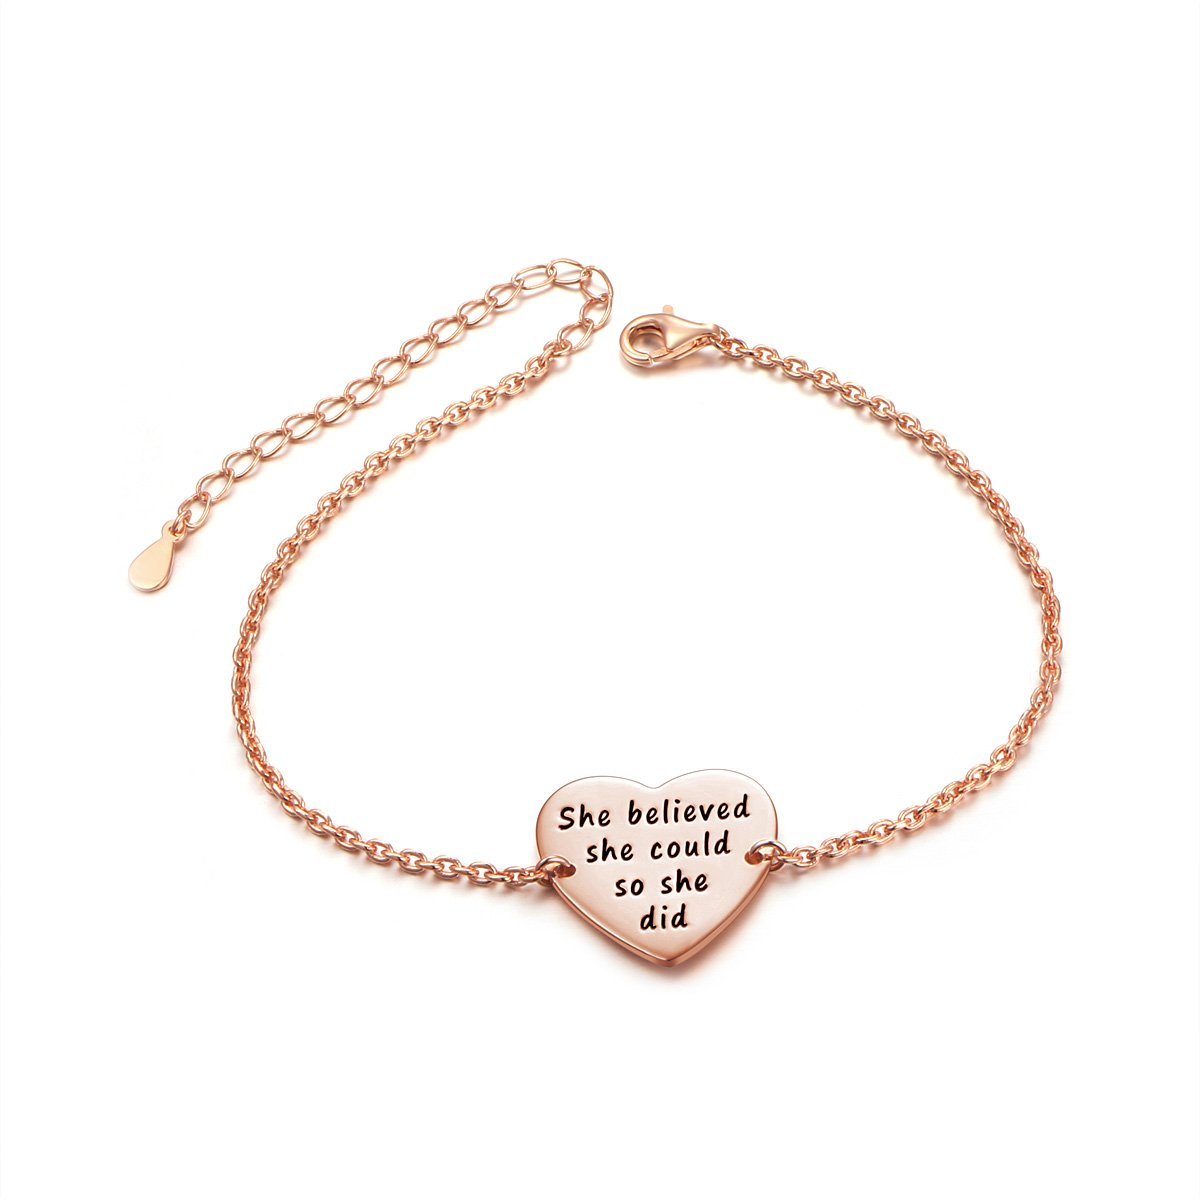 "SILVER MOUNTAIN Sterling Silver Engraved Inspirational Adjustable Bracelet ""She Believed She Could So She Did"", Graduation Gift 2018 (Rose Gold Plated)"